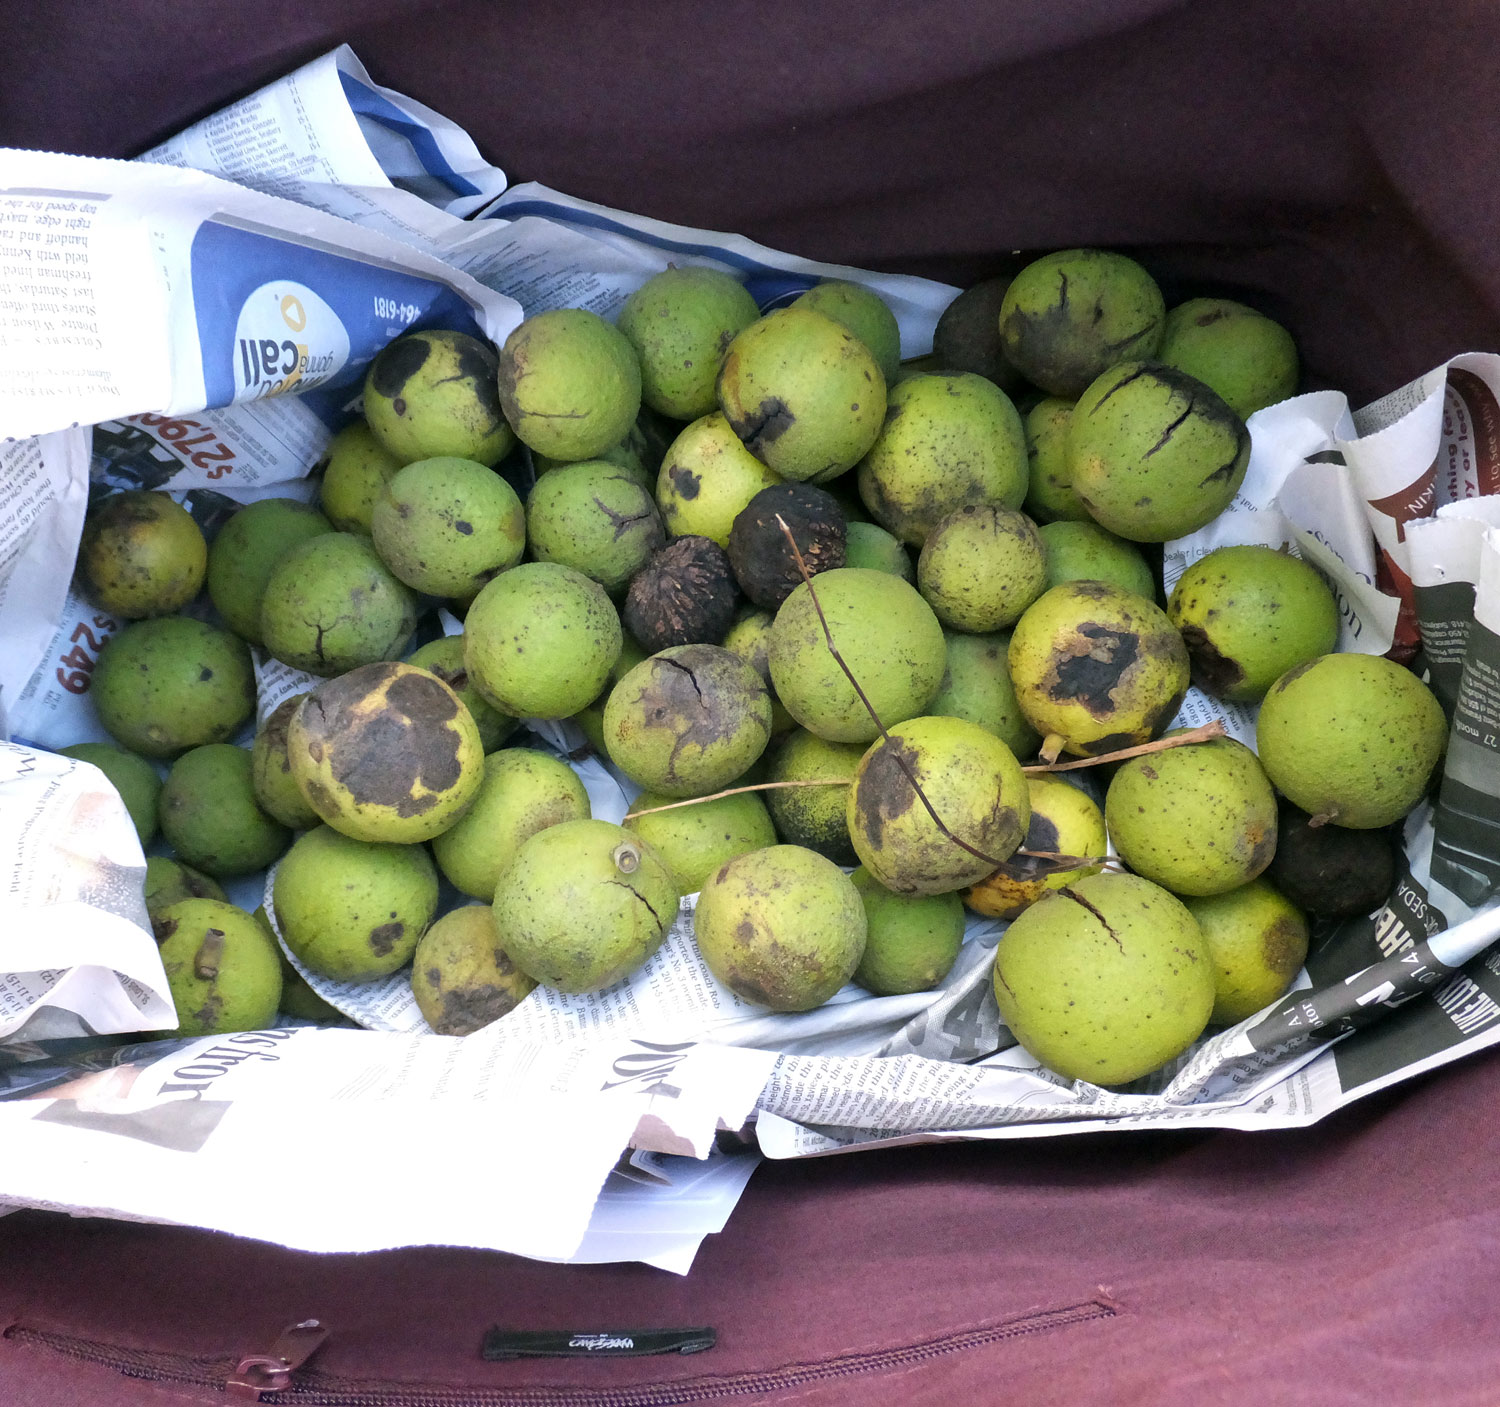 Black Walnuts in my bag